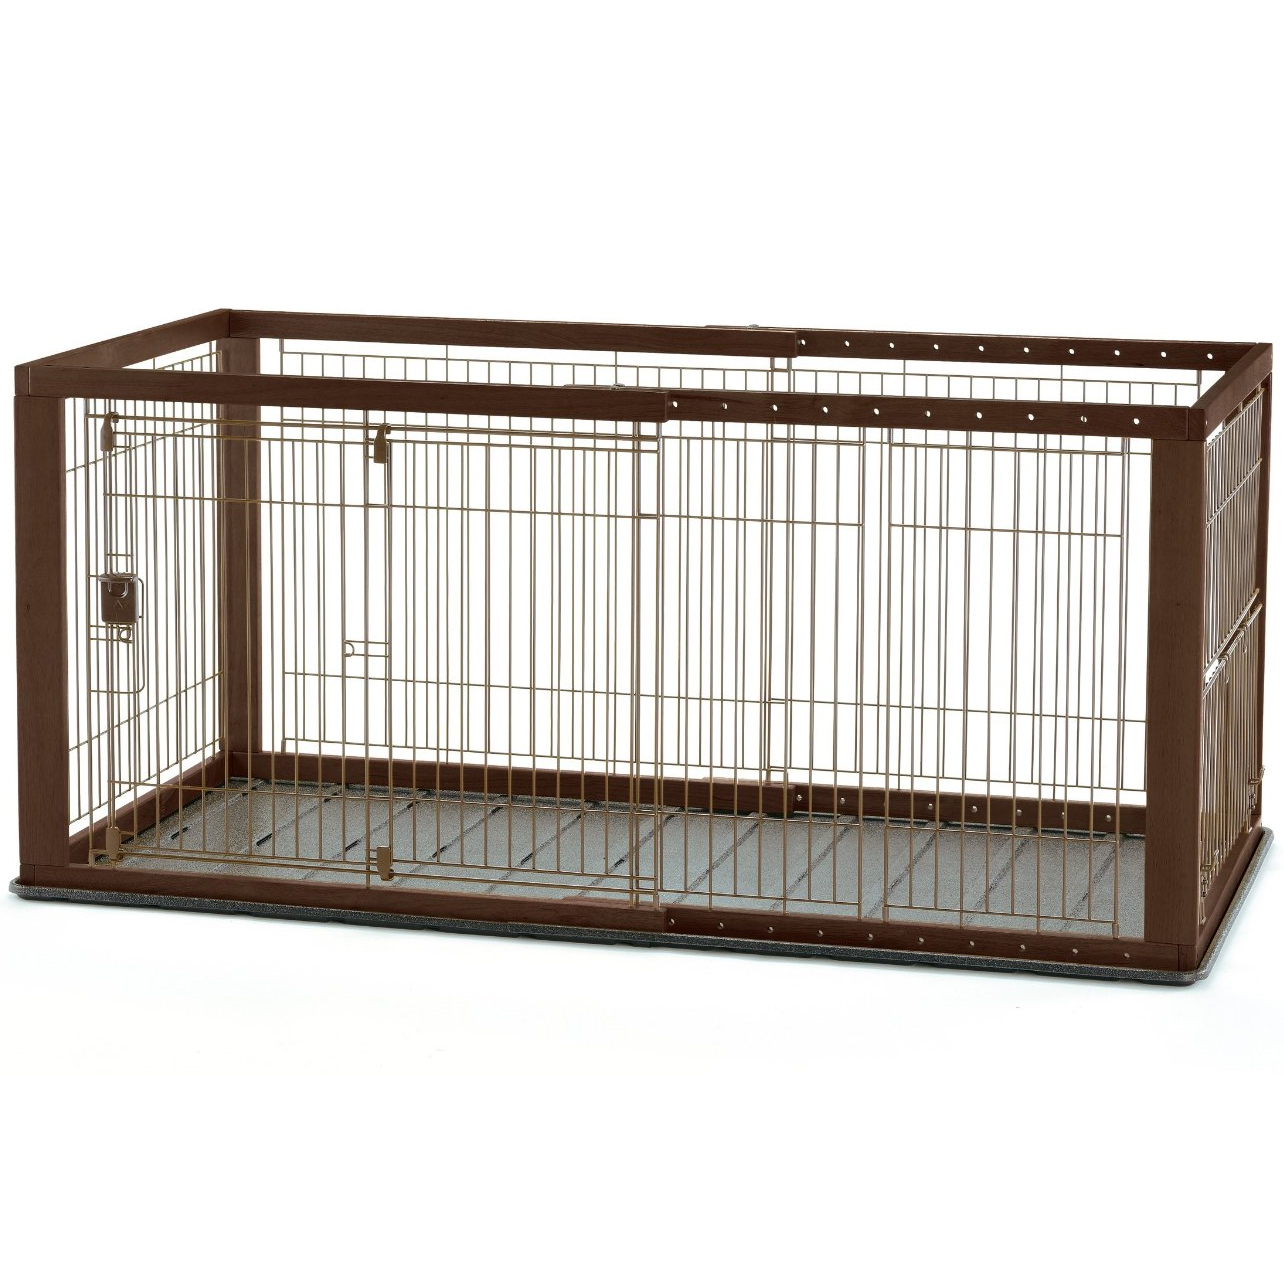 expandable dog crate in pet pens With expandable dog crate